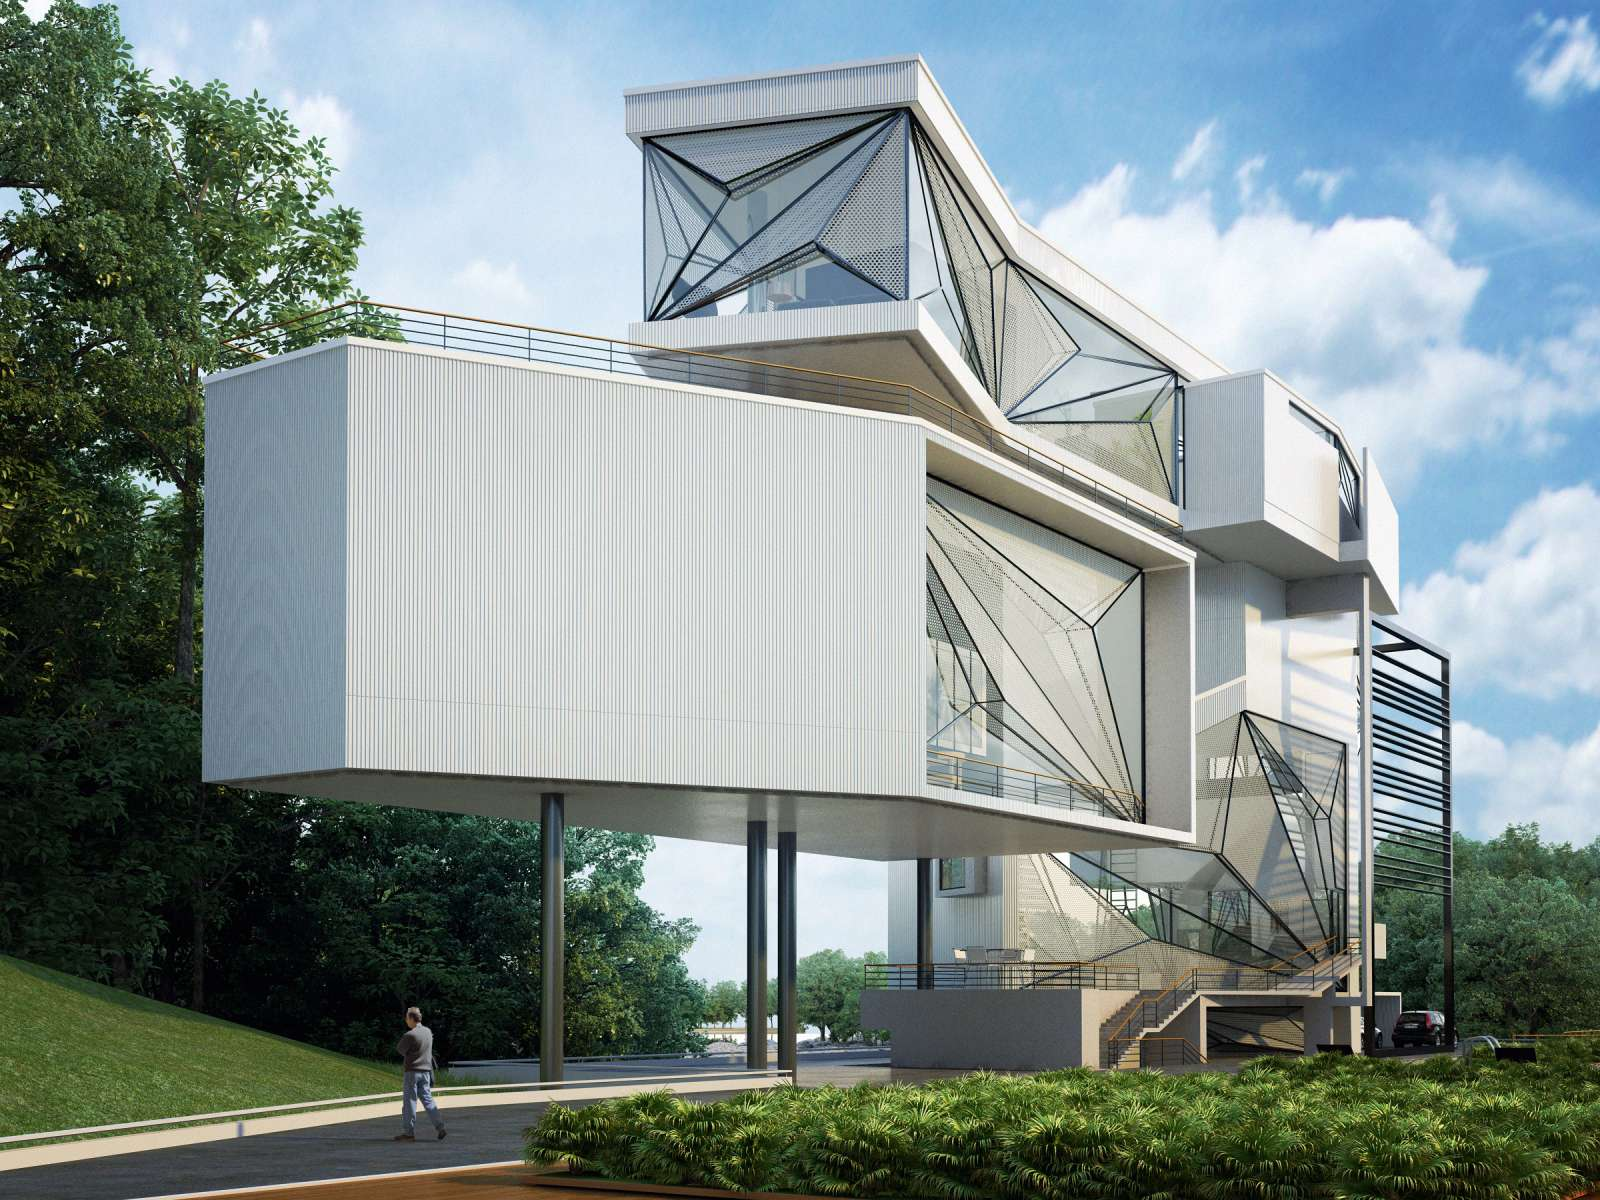 04-Aviator-s-Villa-by-Urban-Office-Architecture